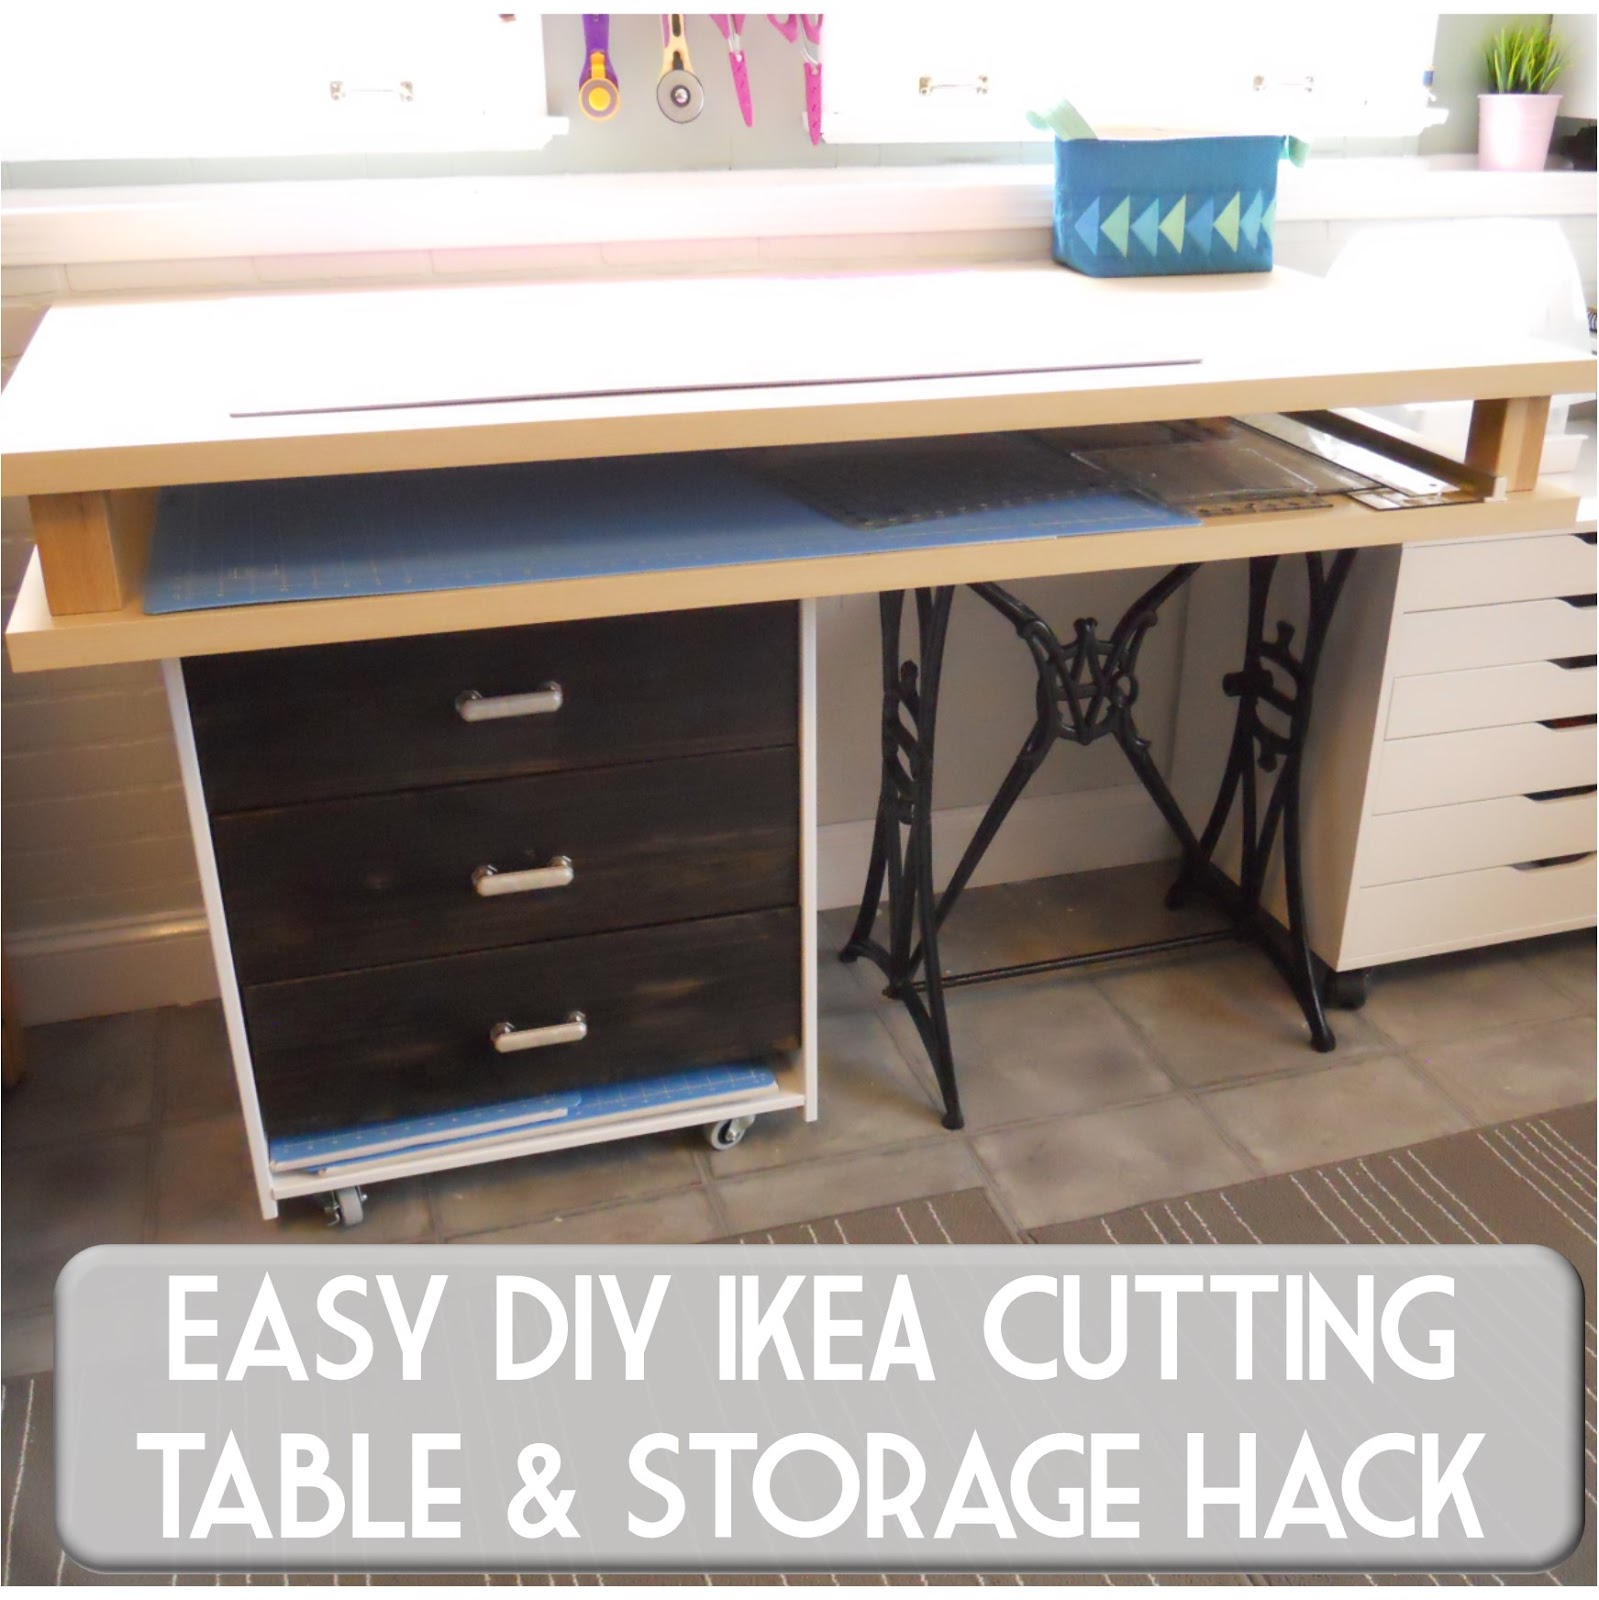 Diy cutting table -  Slowly Plugging Away At Small Projects Around My Sewing Space And One Of The Projects Needing To Be Crossed Off My List Has Been A New Cutting Table